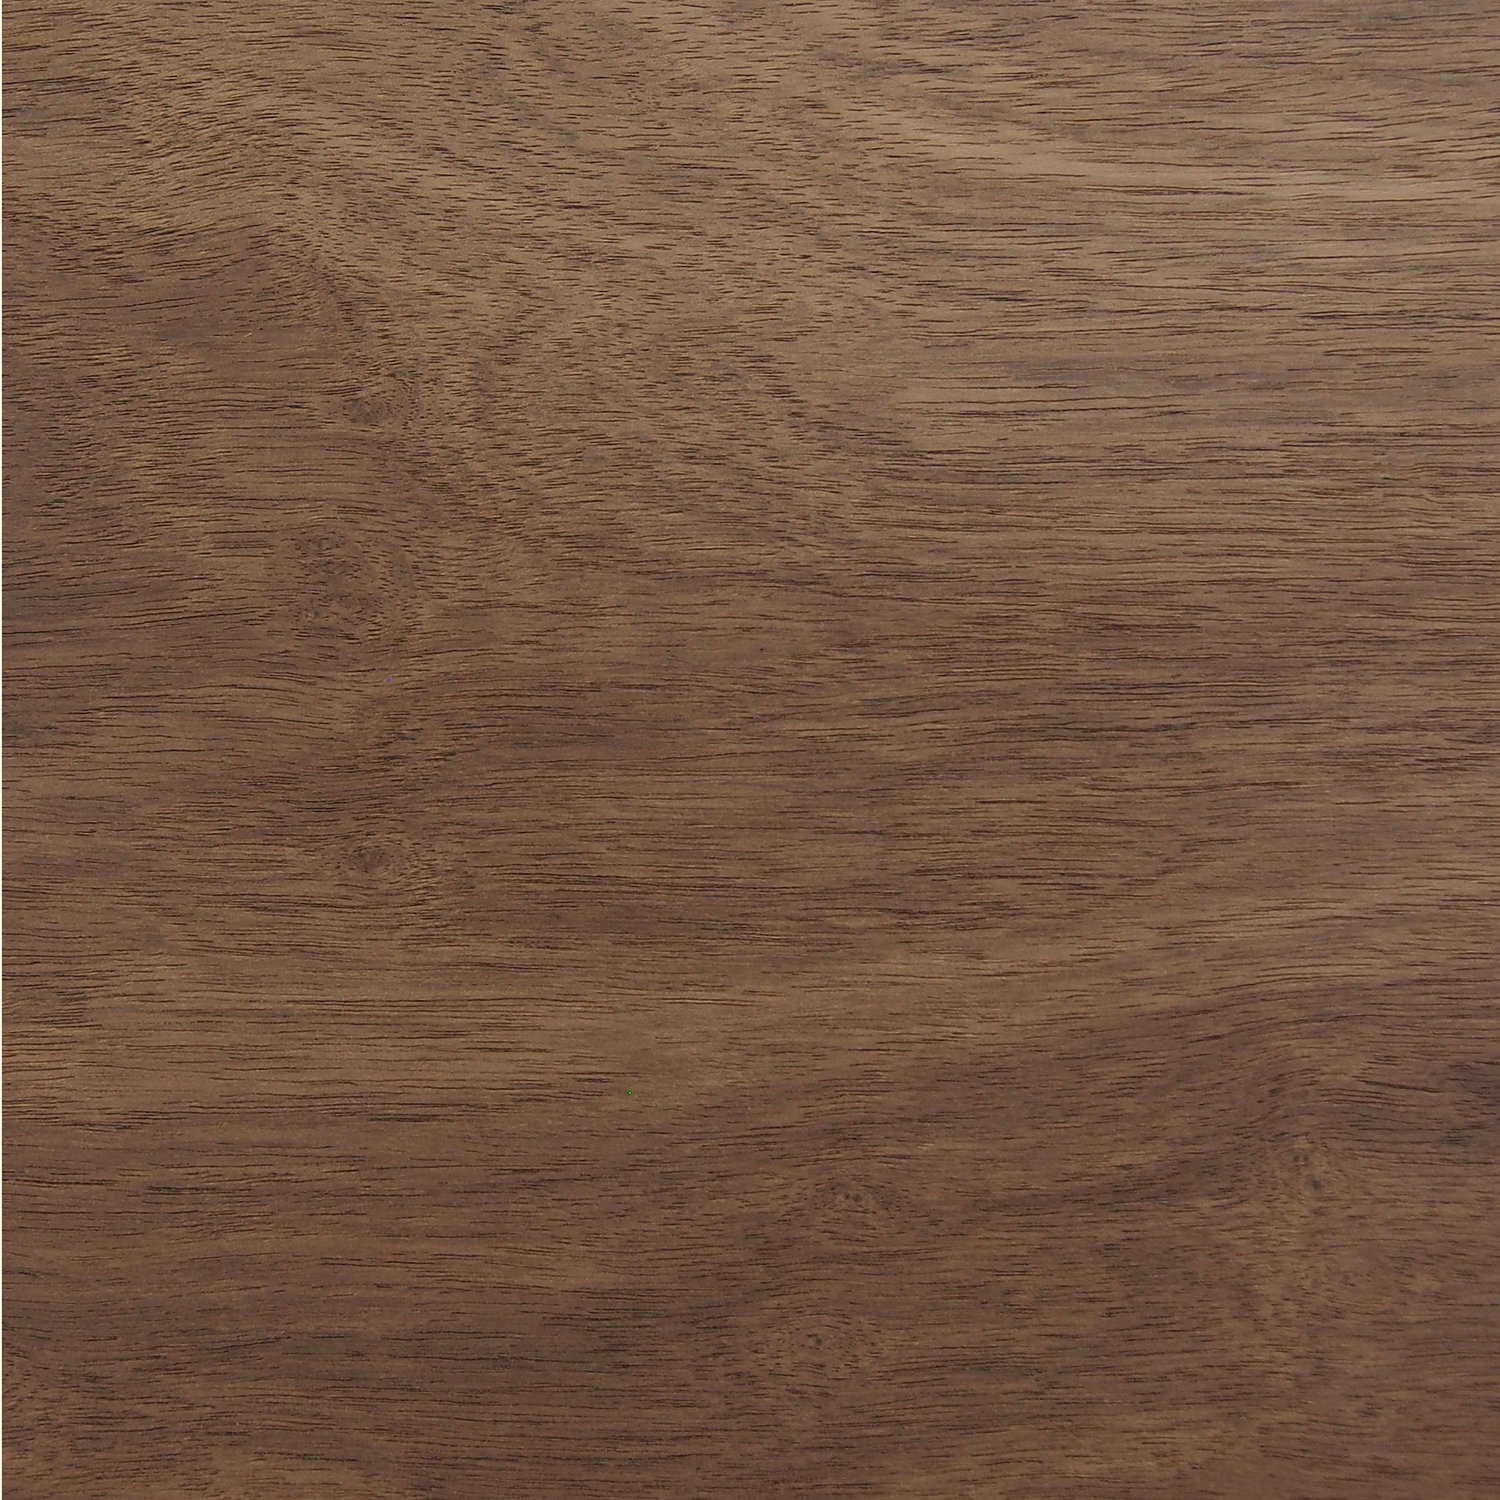 Laurel  Available in 0.35mm adhesive backed &  0.45mm / 0.6mm / 0.8mm / 1.6mm  Maximum size: 450mm x 320mm